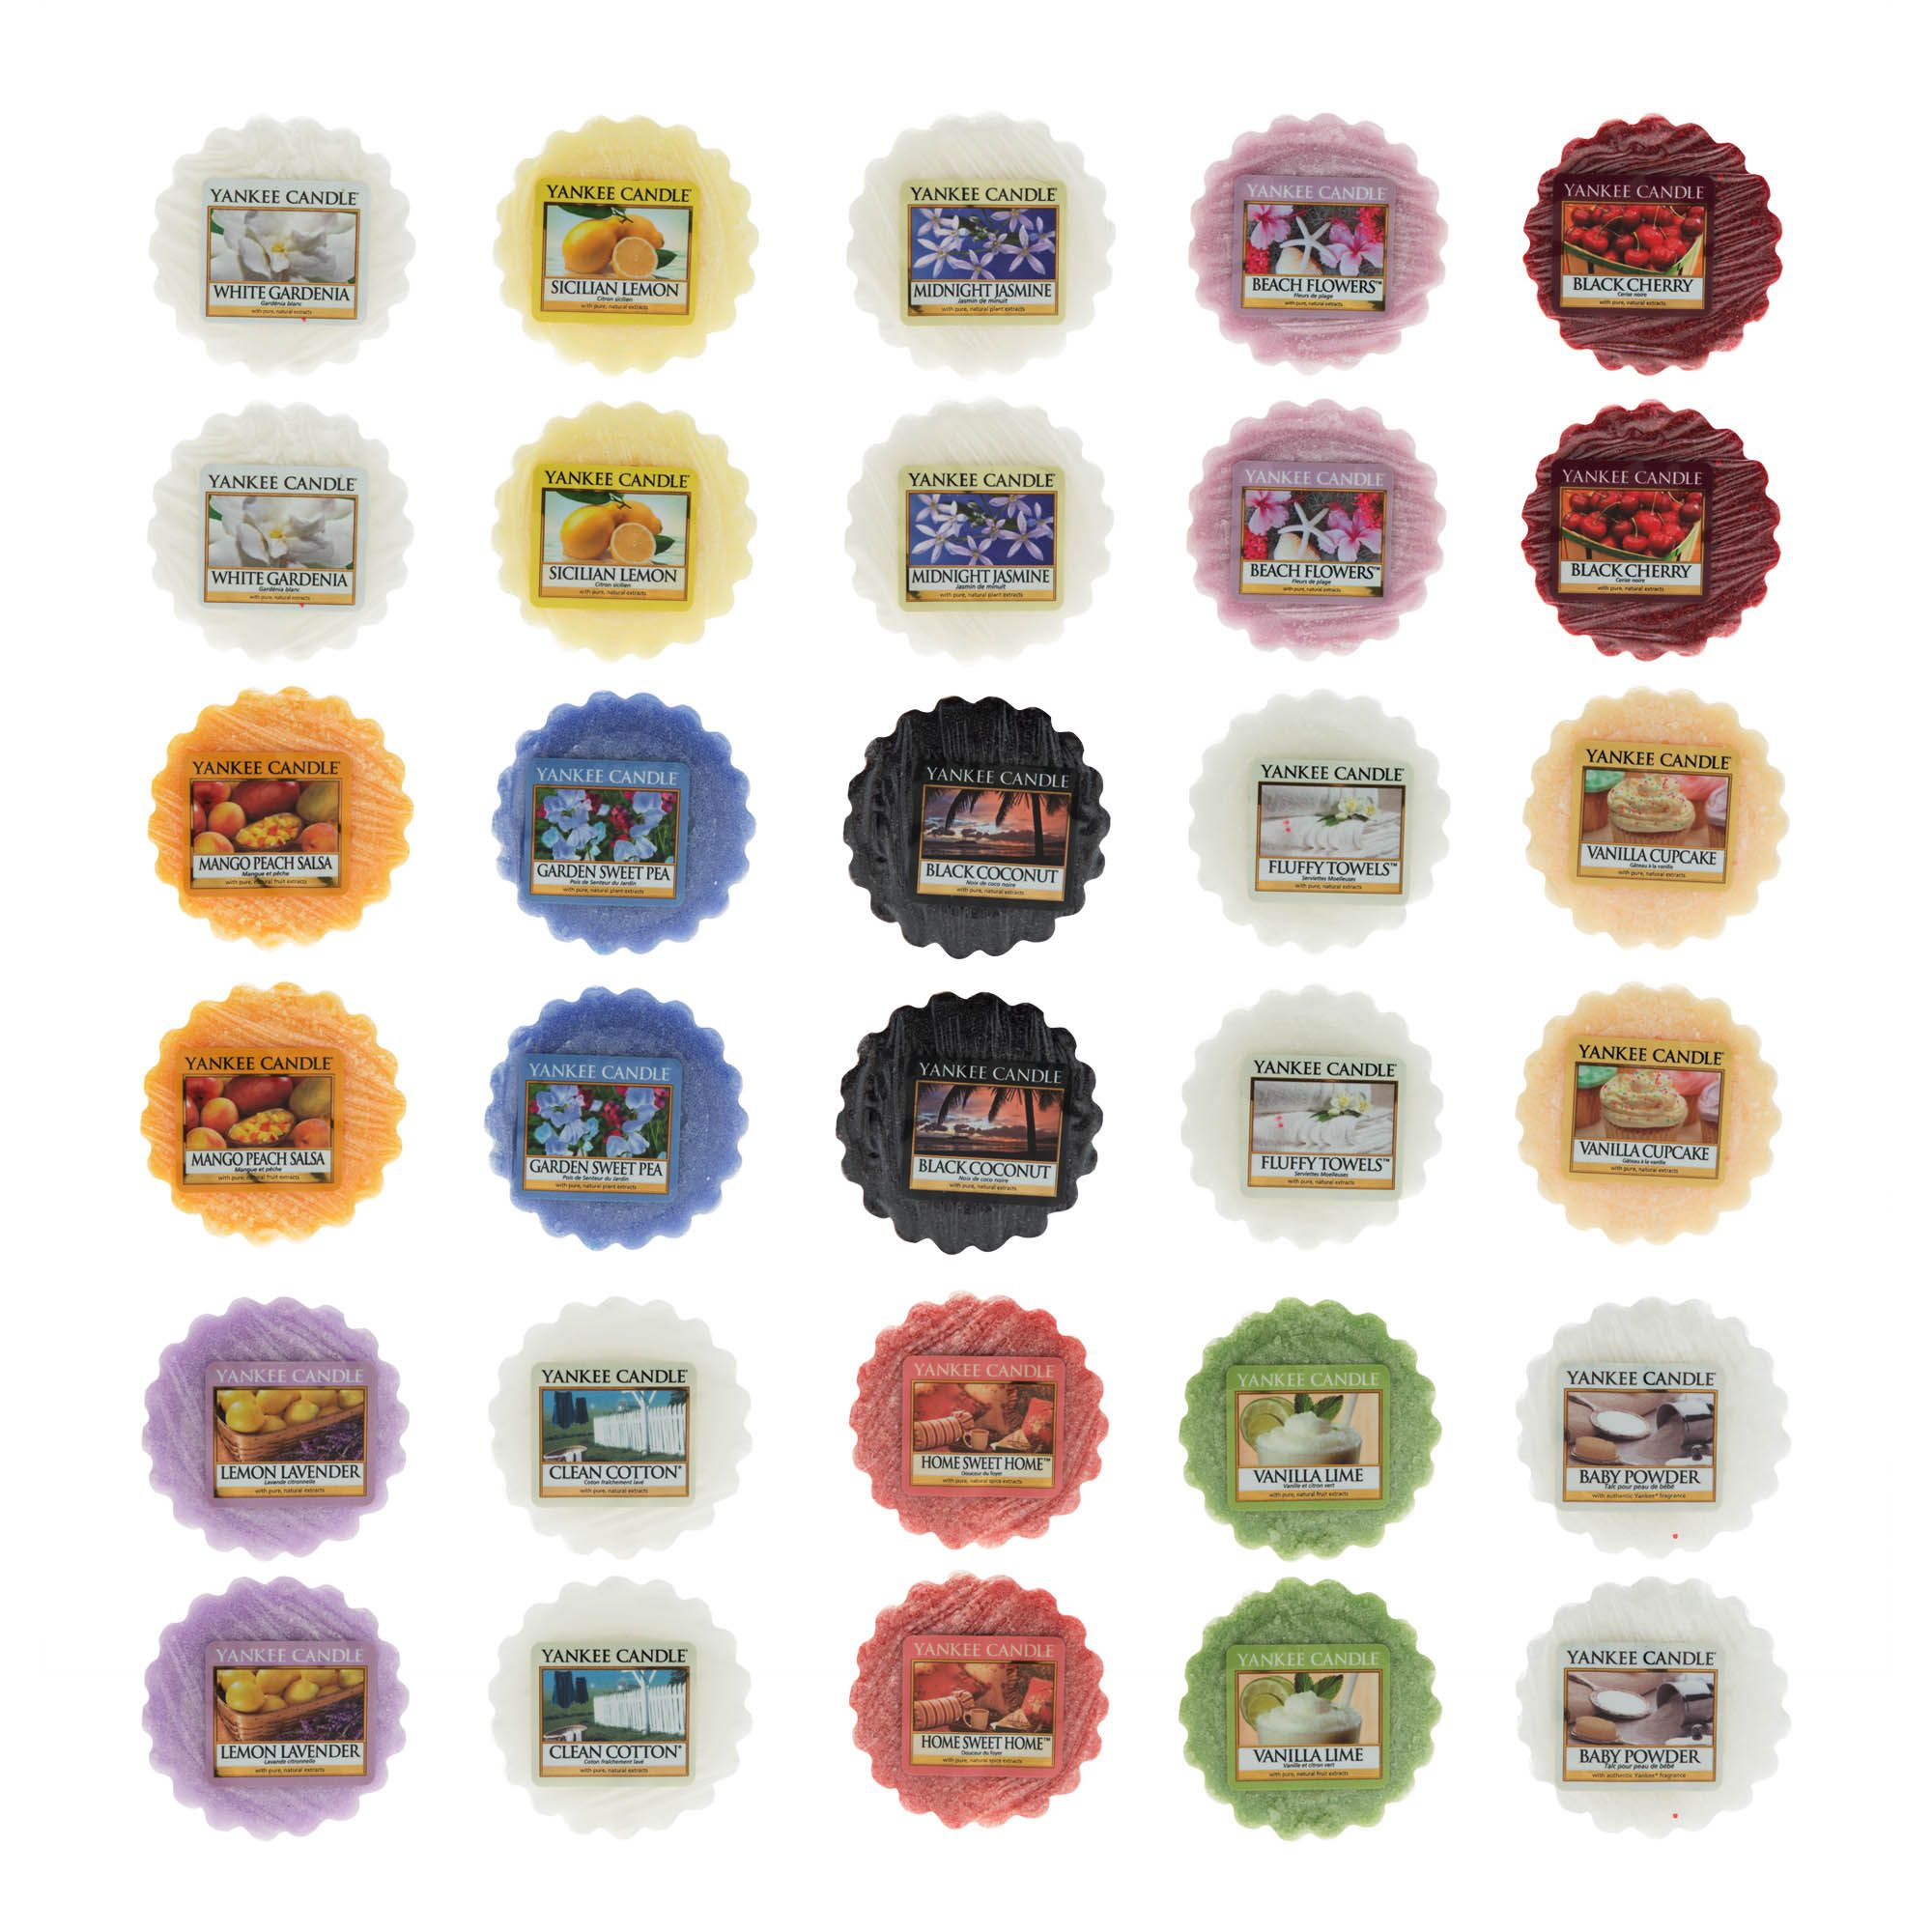 Qvc Stoneline Imagination Yankee Candle Set 30 Tartine Per Brucia Essenze Qvc Italia